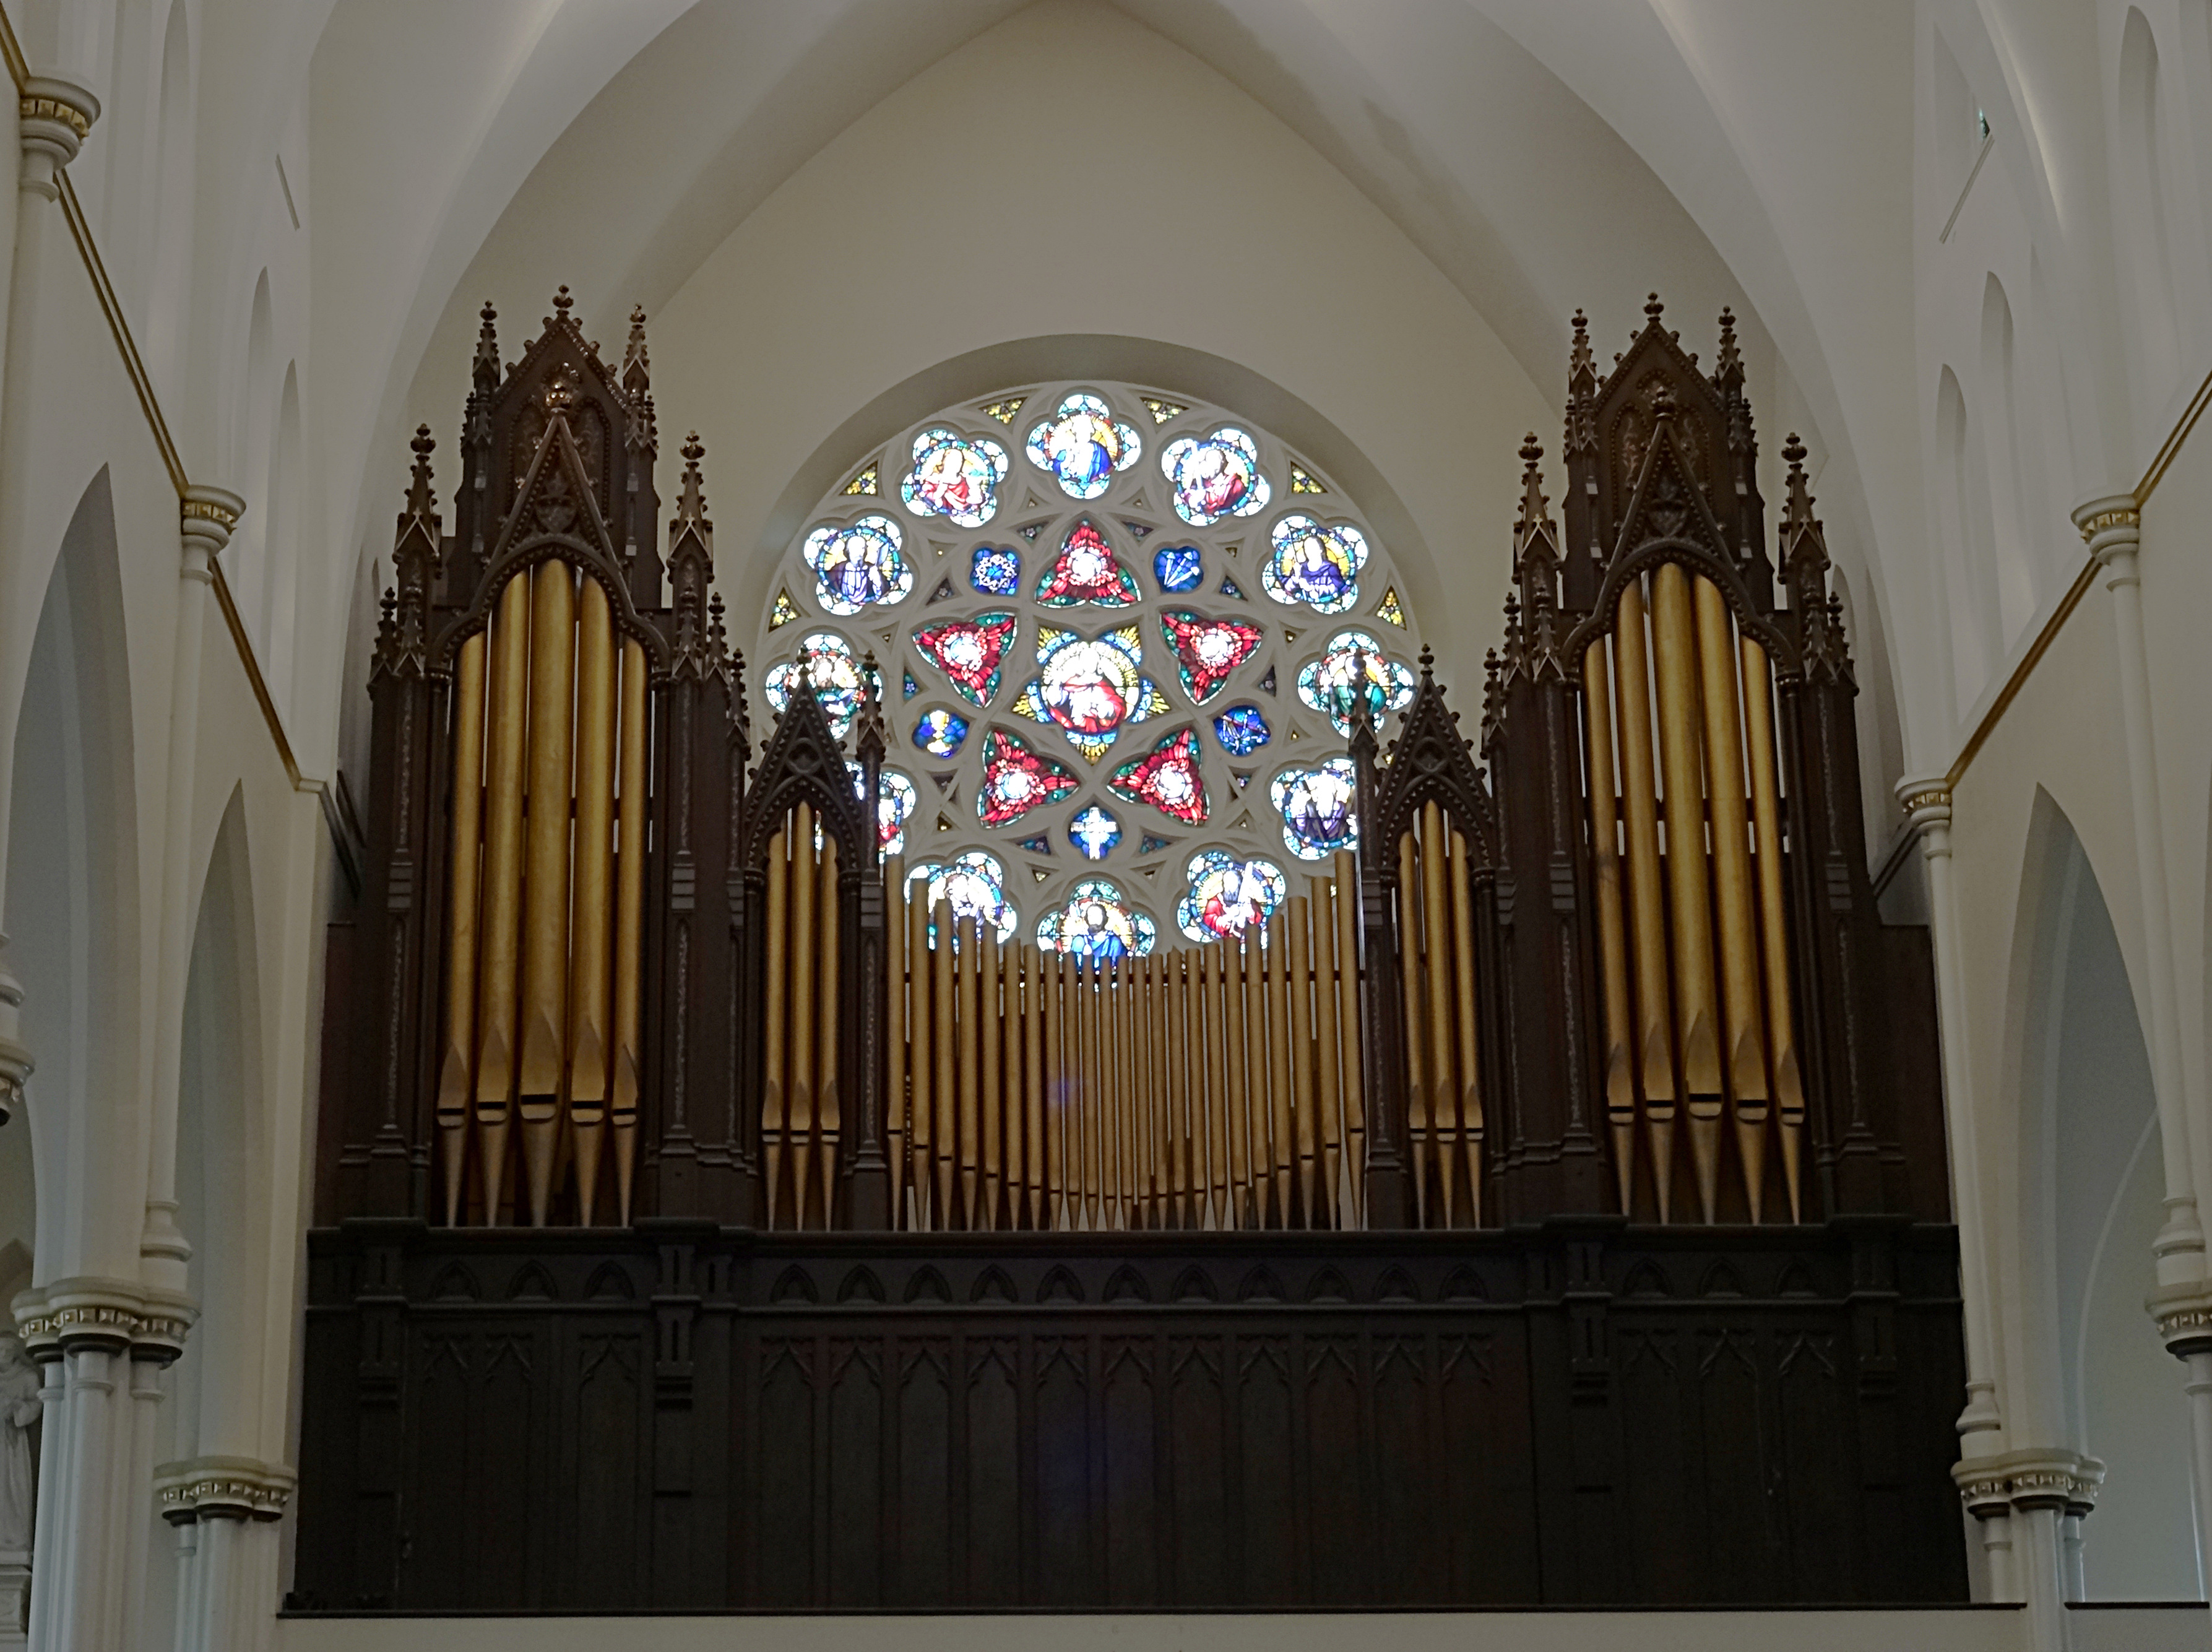 Photograph of the pipe organ housed in the Cathedral, by Erwinmeier of Wikimedia Commons